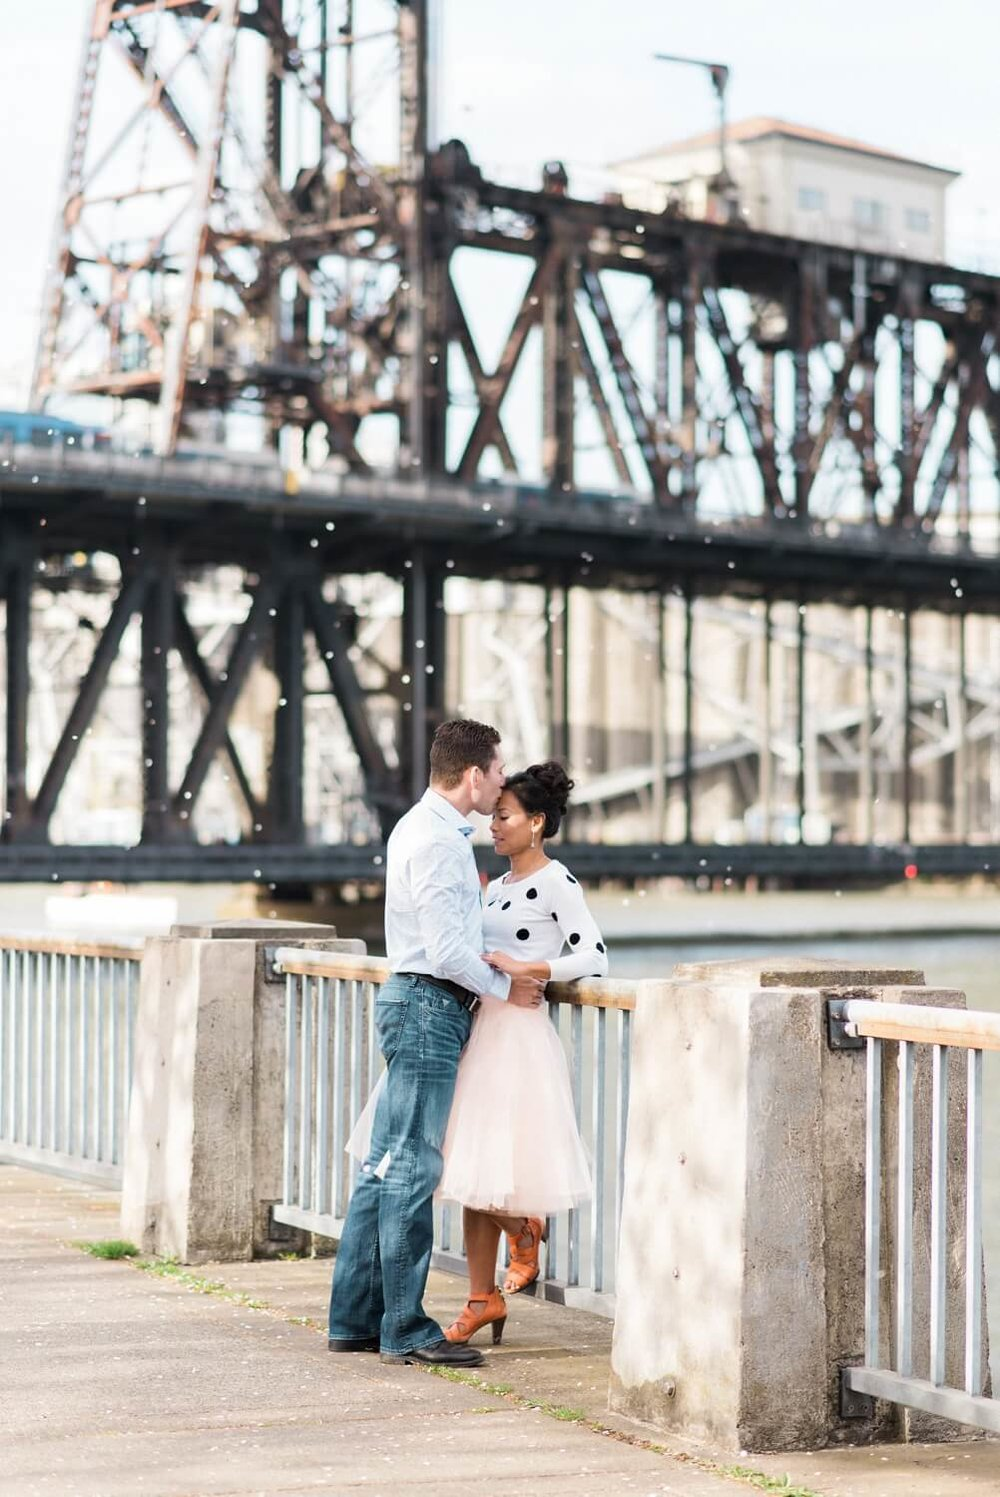 portland-waterfront-engagement-cherry-blossom-cathedral-park-sokhorn-jay-081_cr.jpg